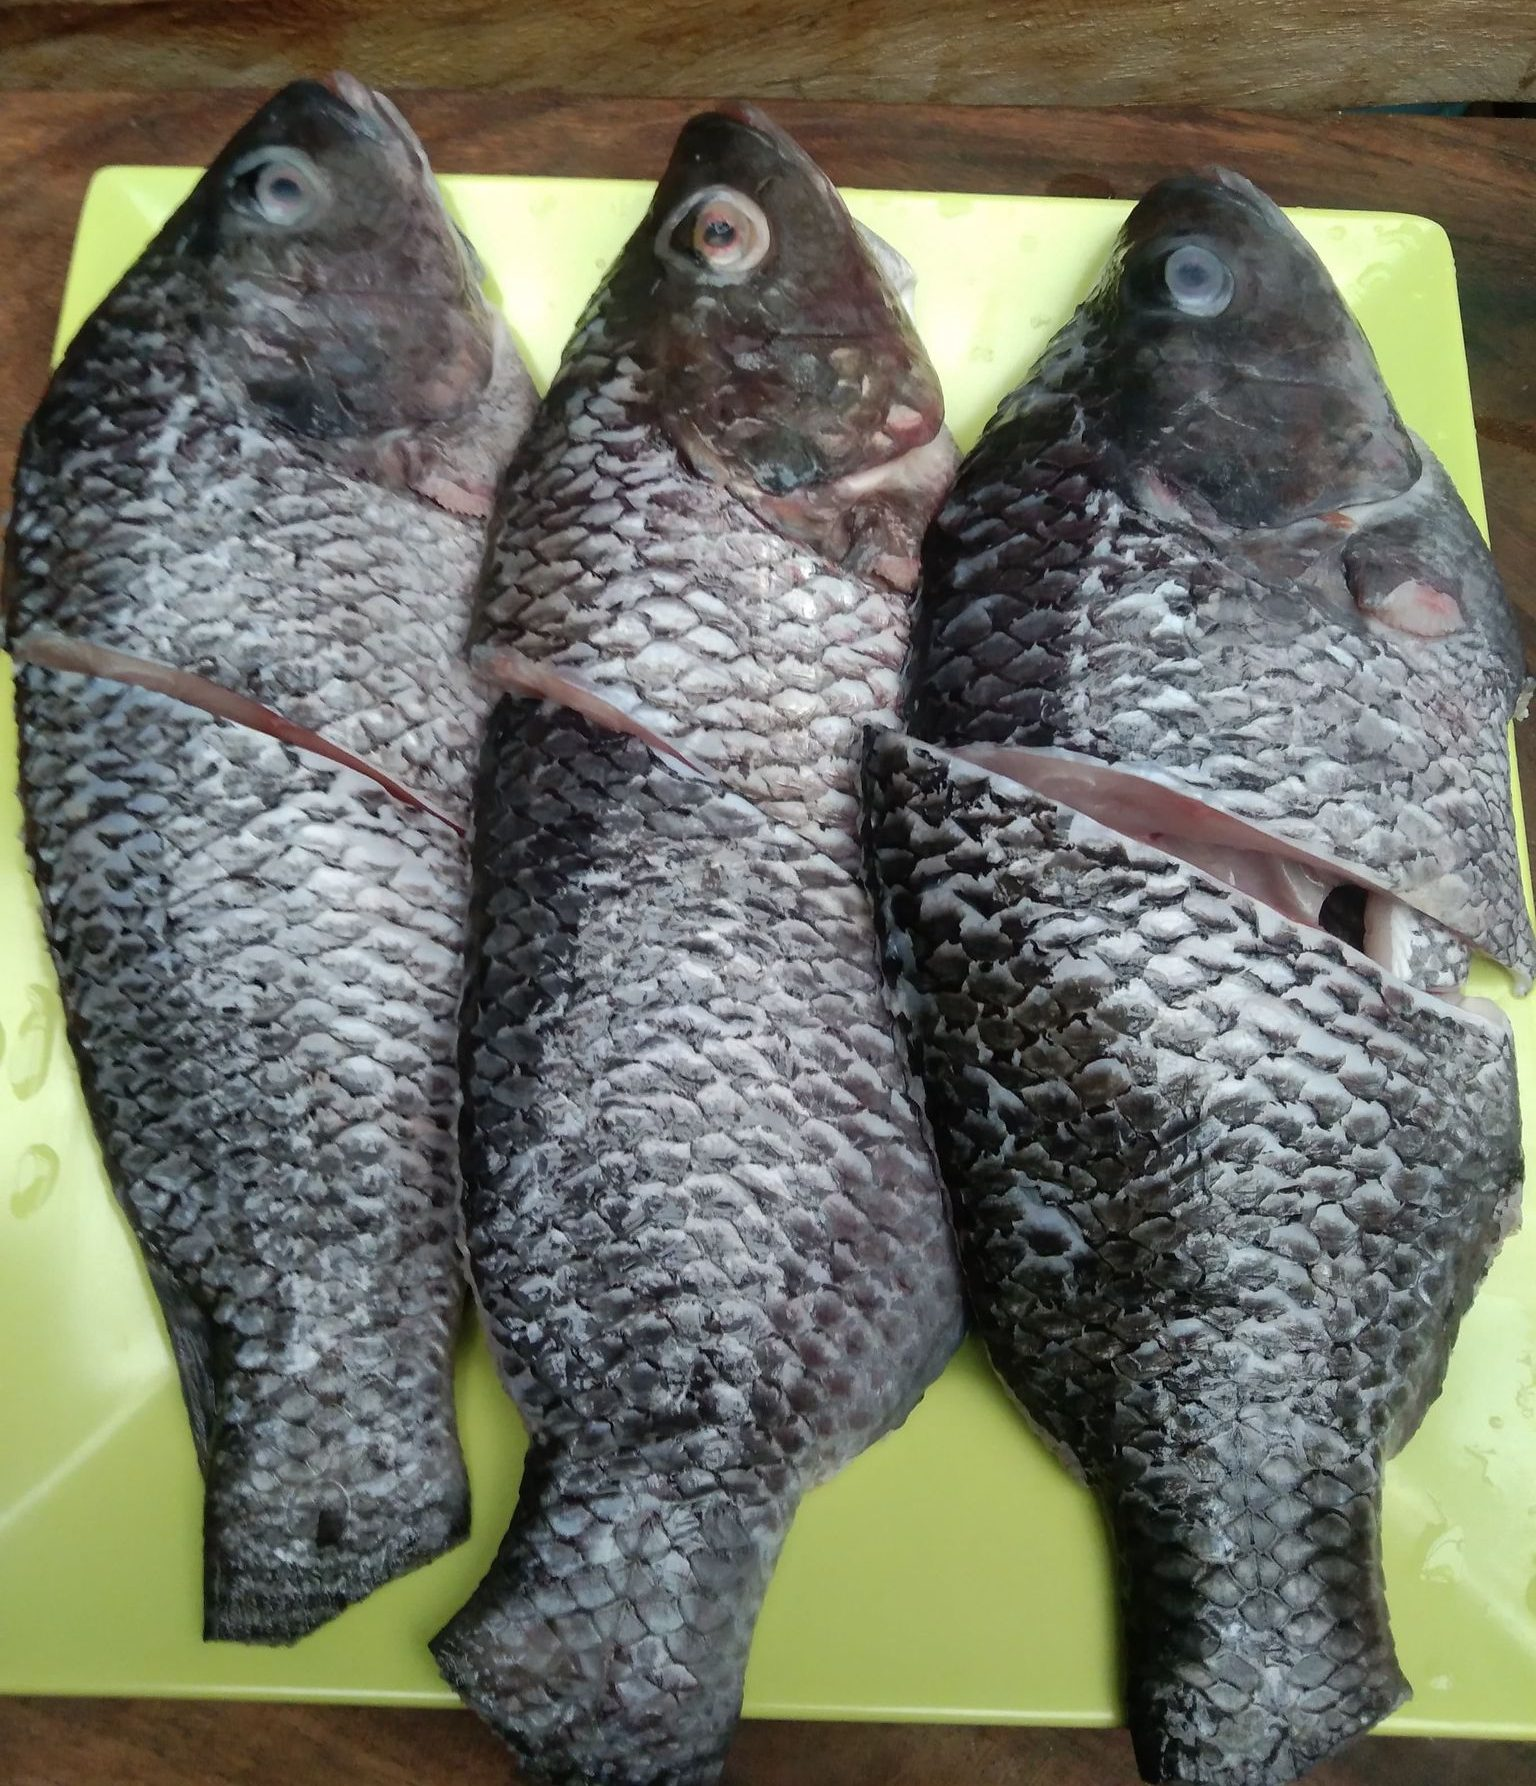 Three pieces of fresh tilapia on a plate.